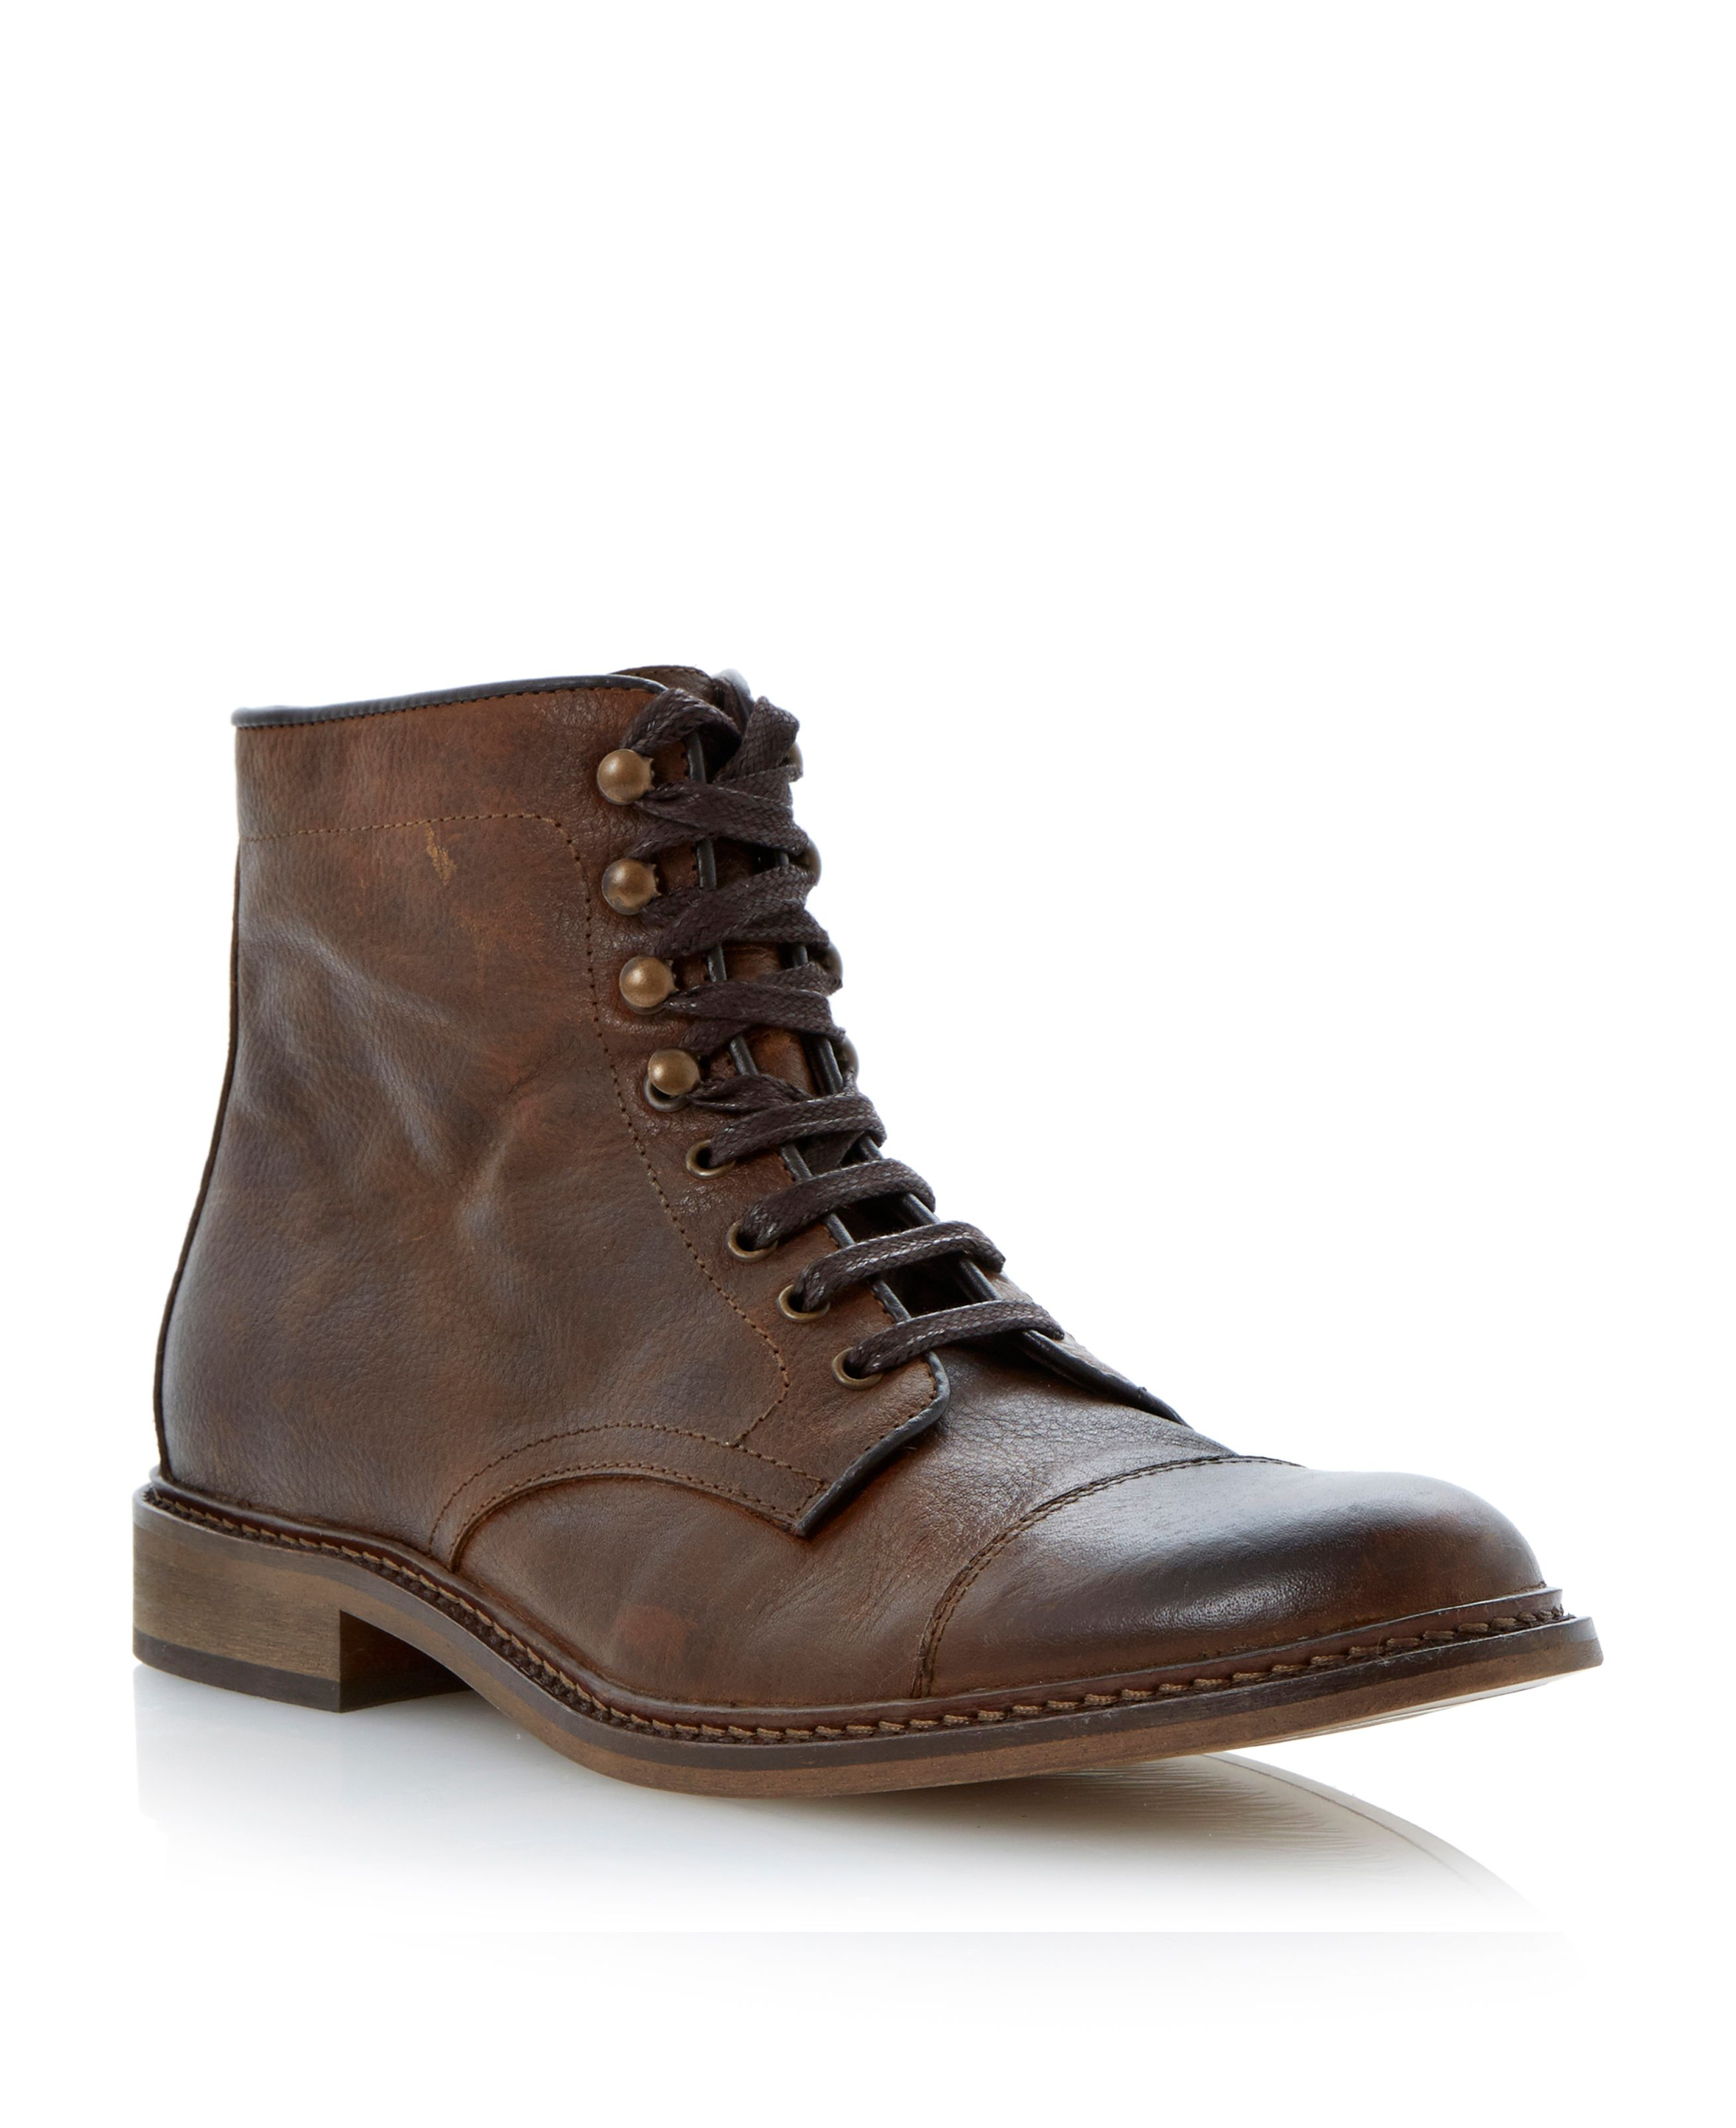 Capetown lace up toecap boots